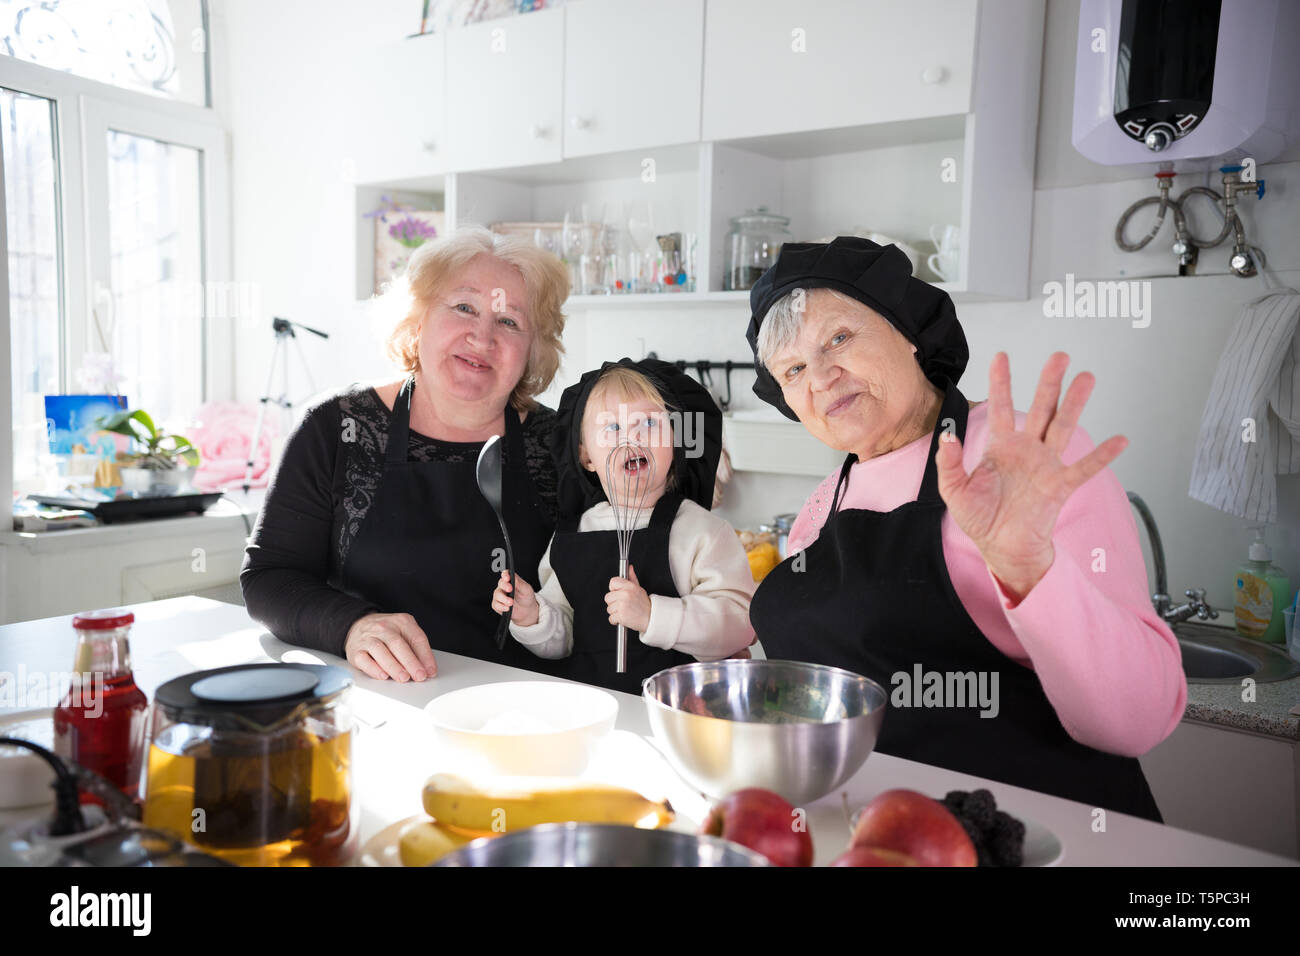 Family eating pancakes and drinking tea in the kitchen. Posing for the camera and waving hands Stock Photo